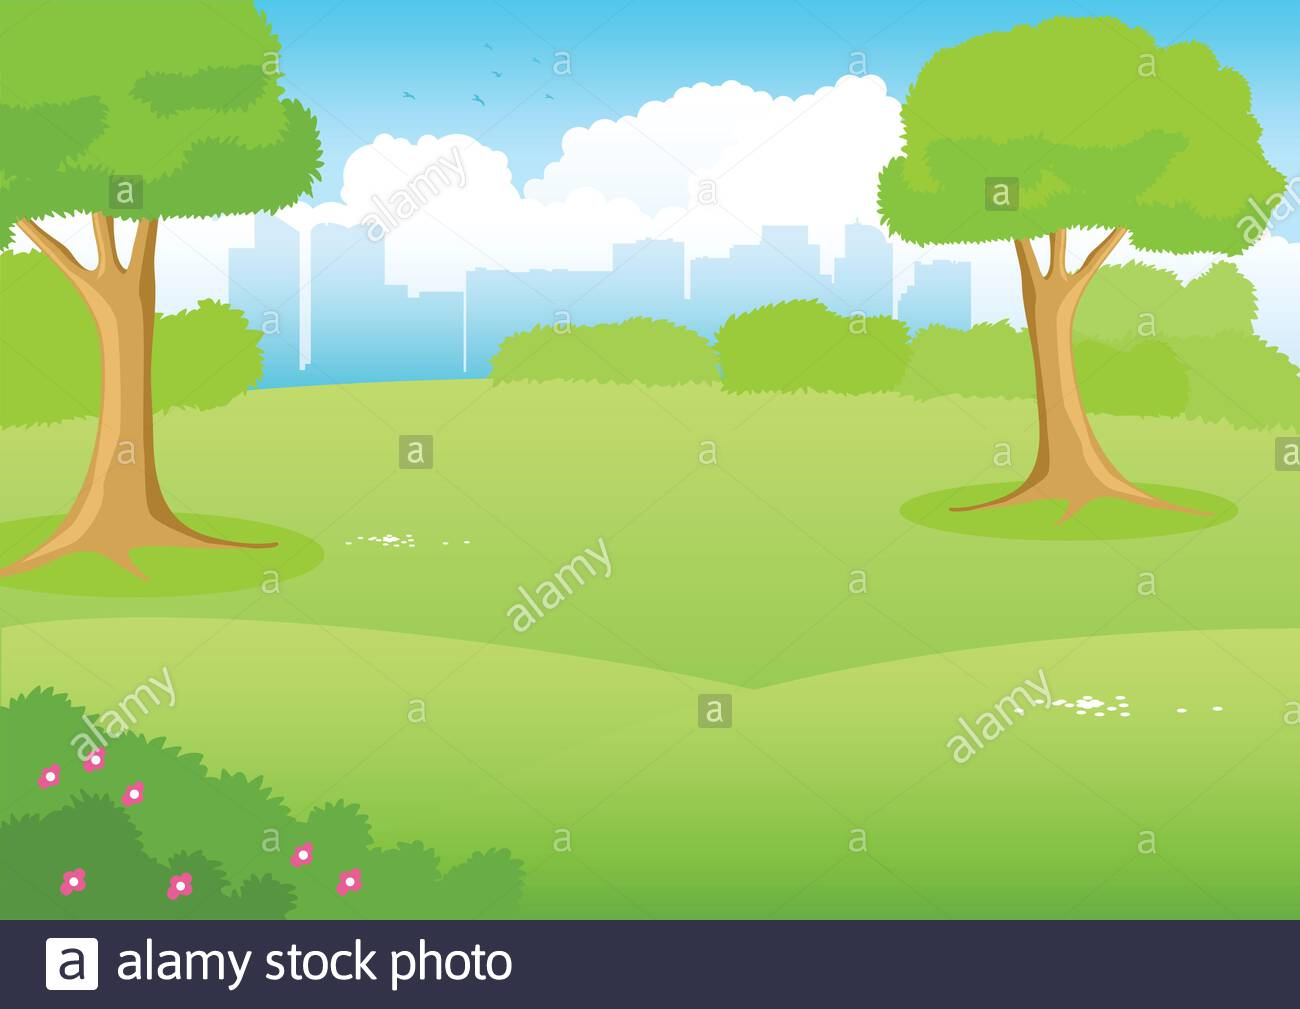 Cartoon Illustration Of A Park With Cityscape As The Background Stock Vector Image Art Alamy